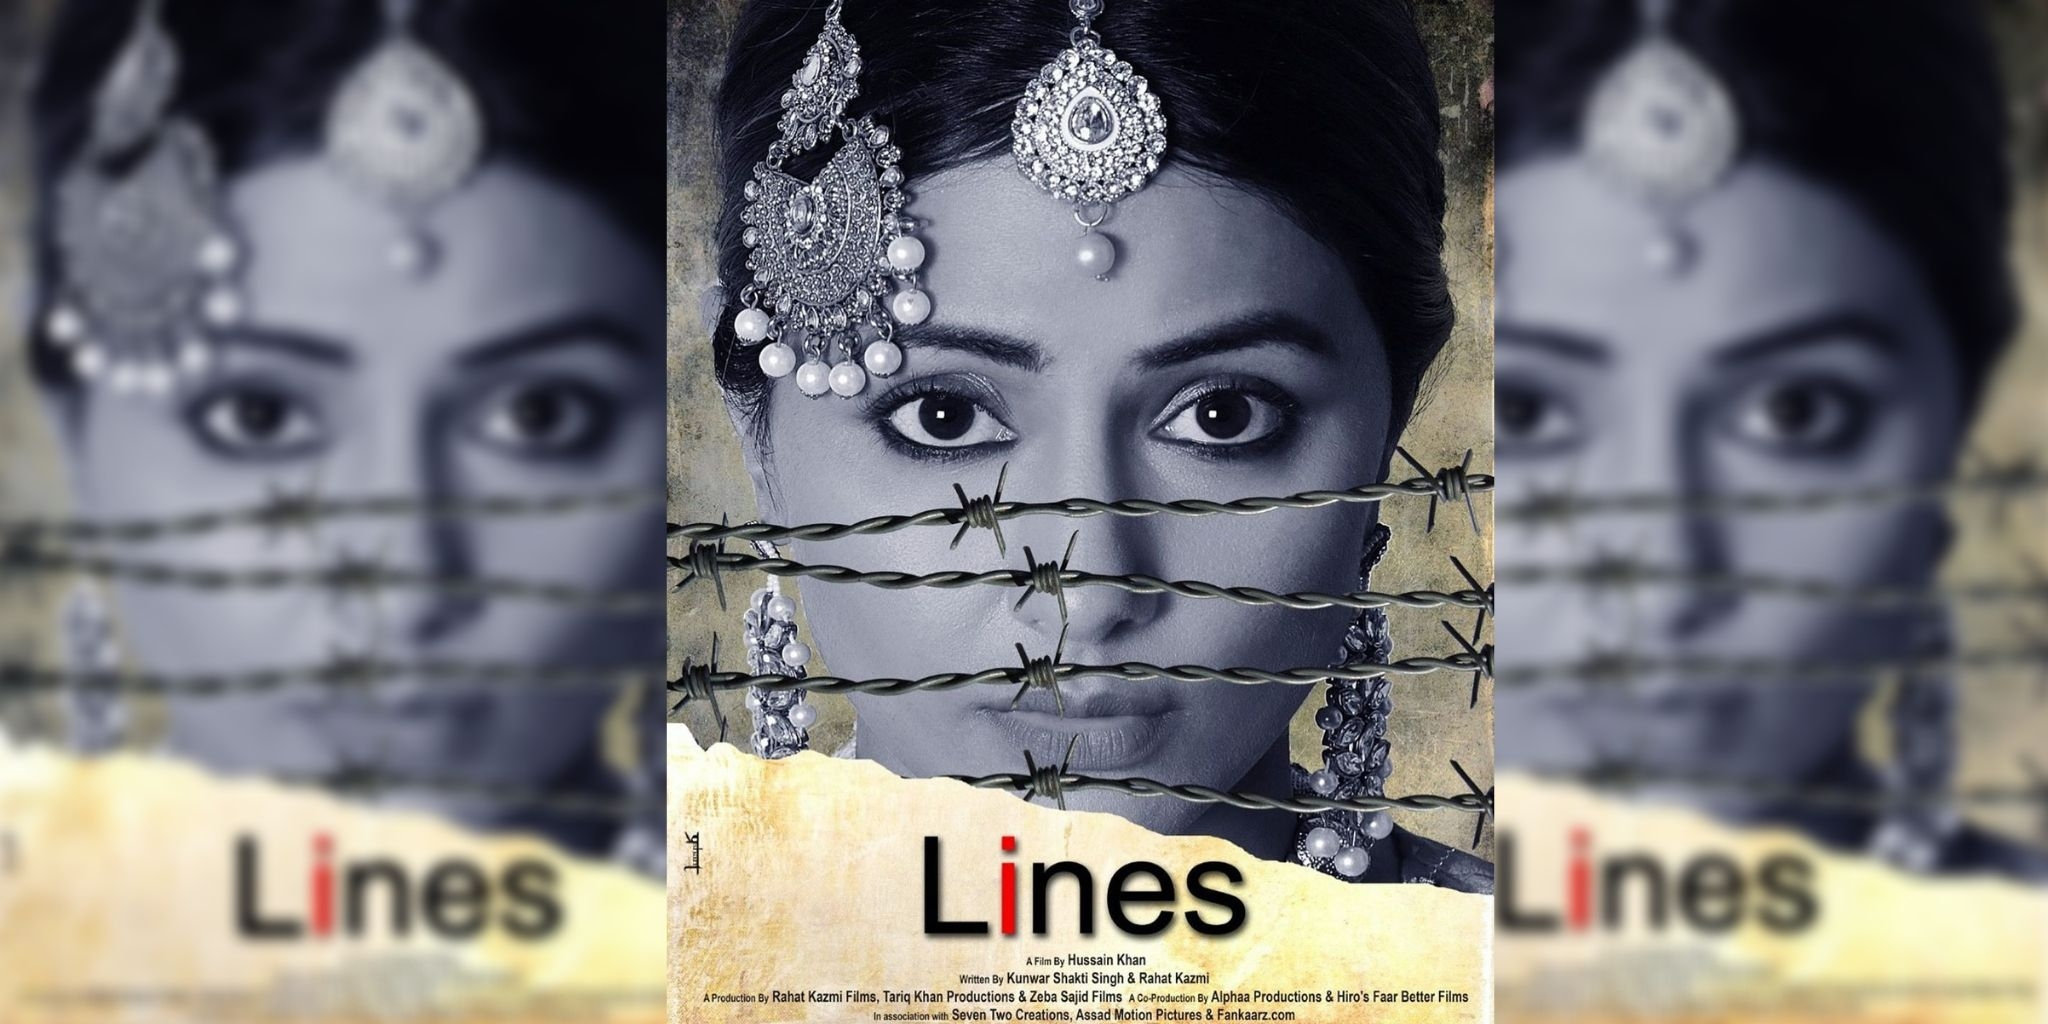 Hina Khan Unveils Her Debut Film Lines' Poster at Cannes 2019